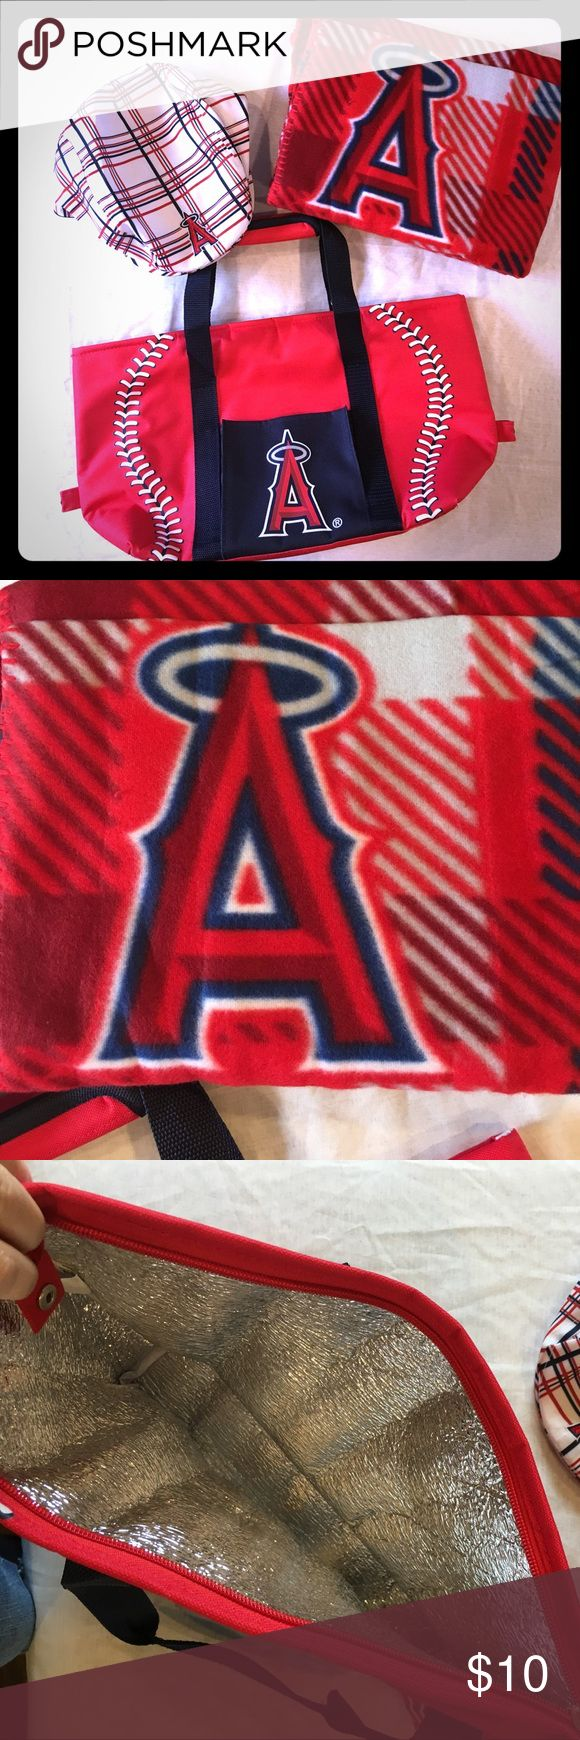 🌻final price!!! MLB Anaheim Angels bundle Newsboy style hat, cozy blanket, and insulated bag with zipper. All are brand new without tags. I ❤️ reasonable offers! Other